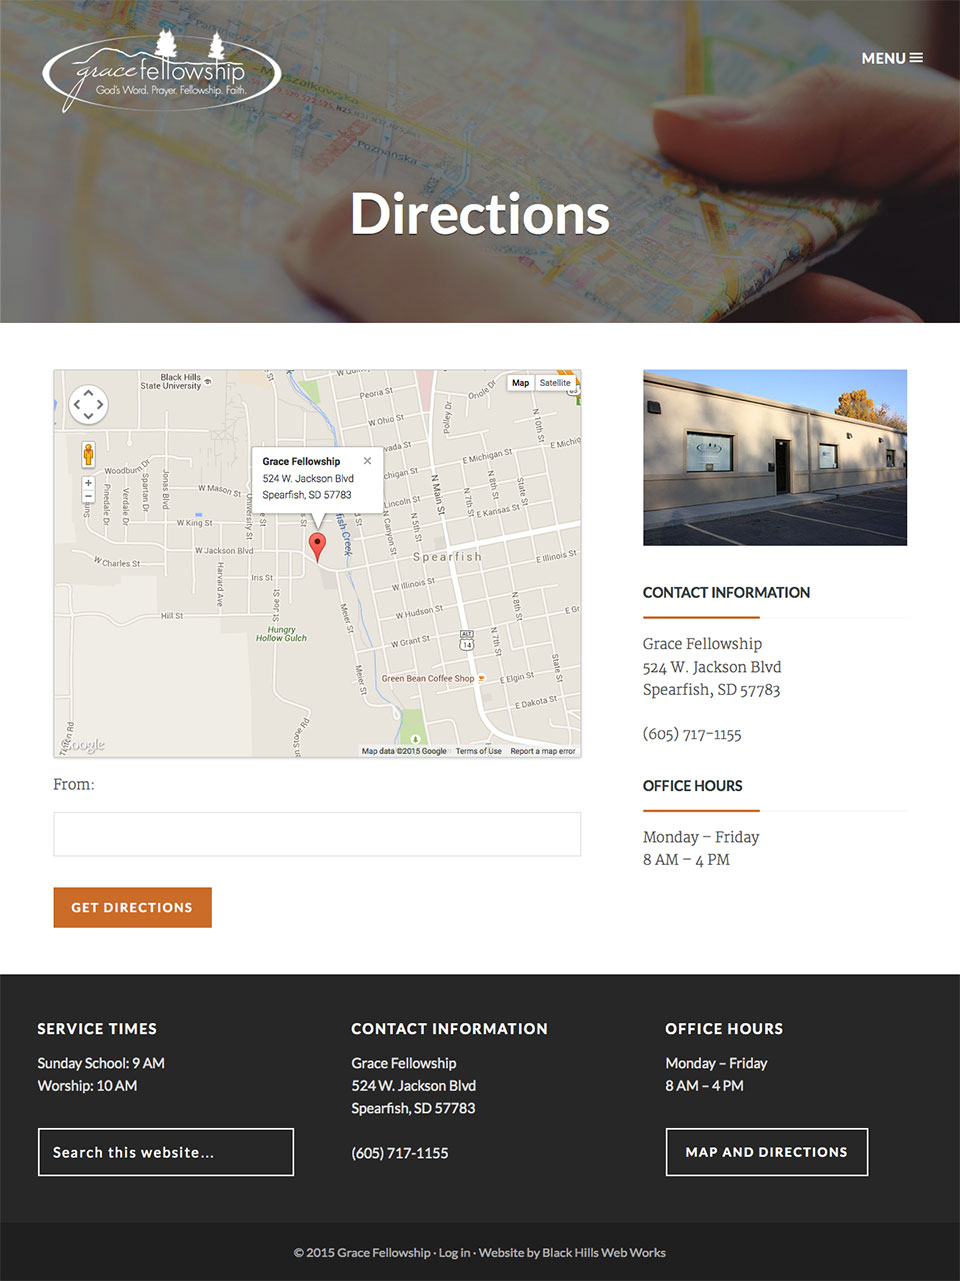 Grace Fellowship Directions page